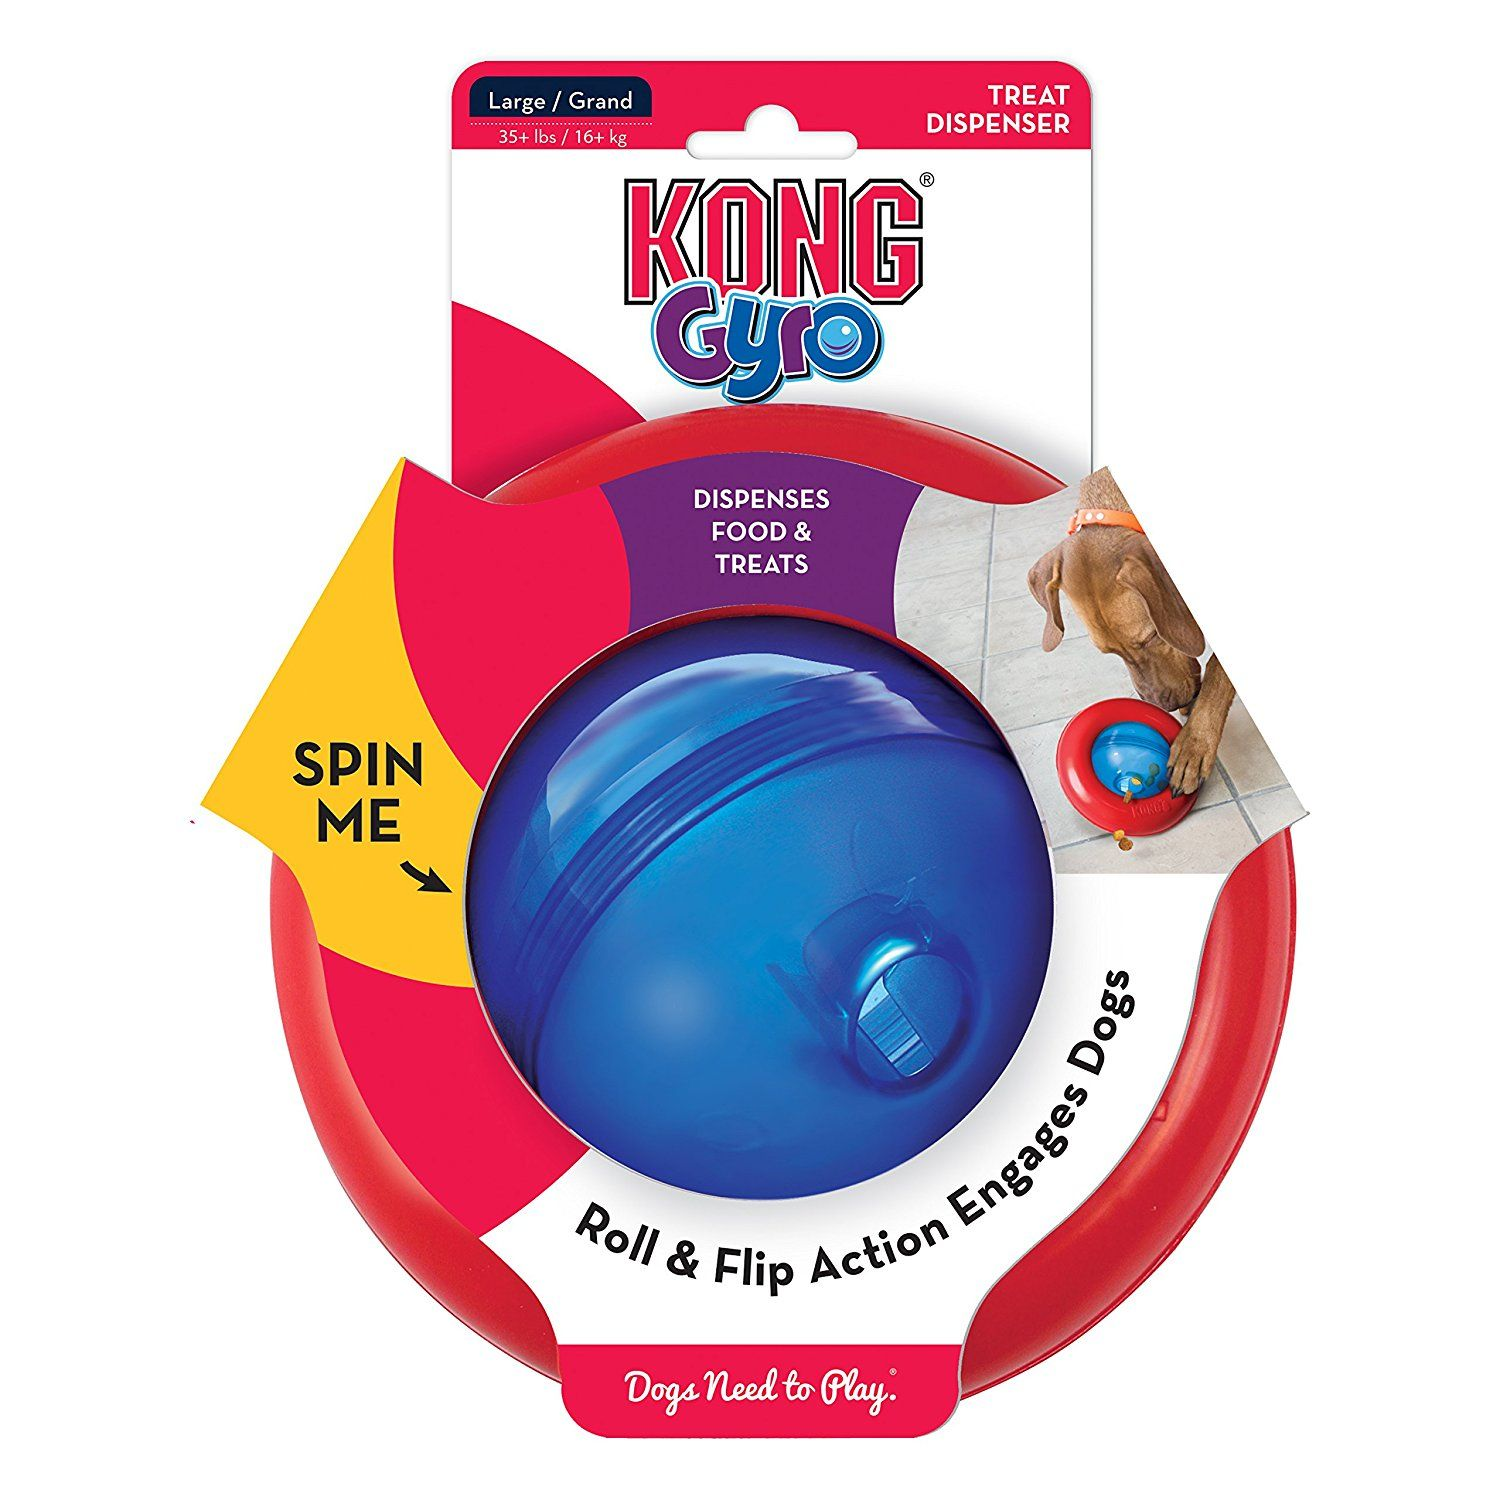 Kong Gyro Dog Toy Click On The Image For Additional Details